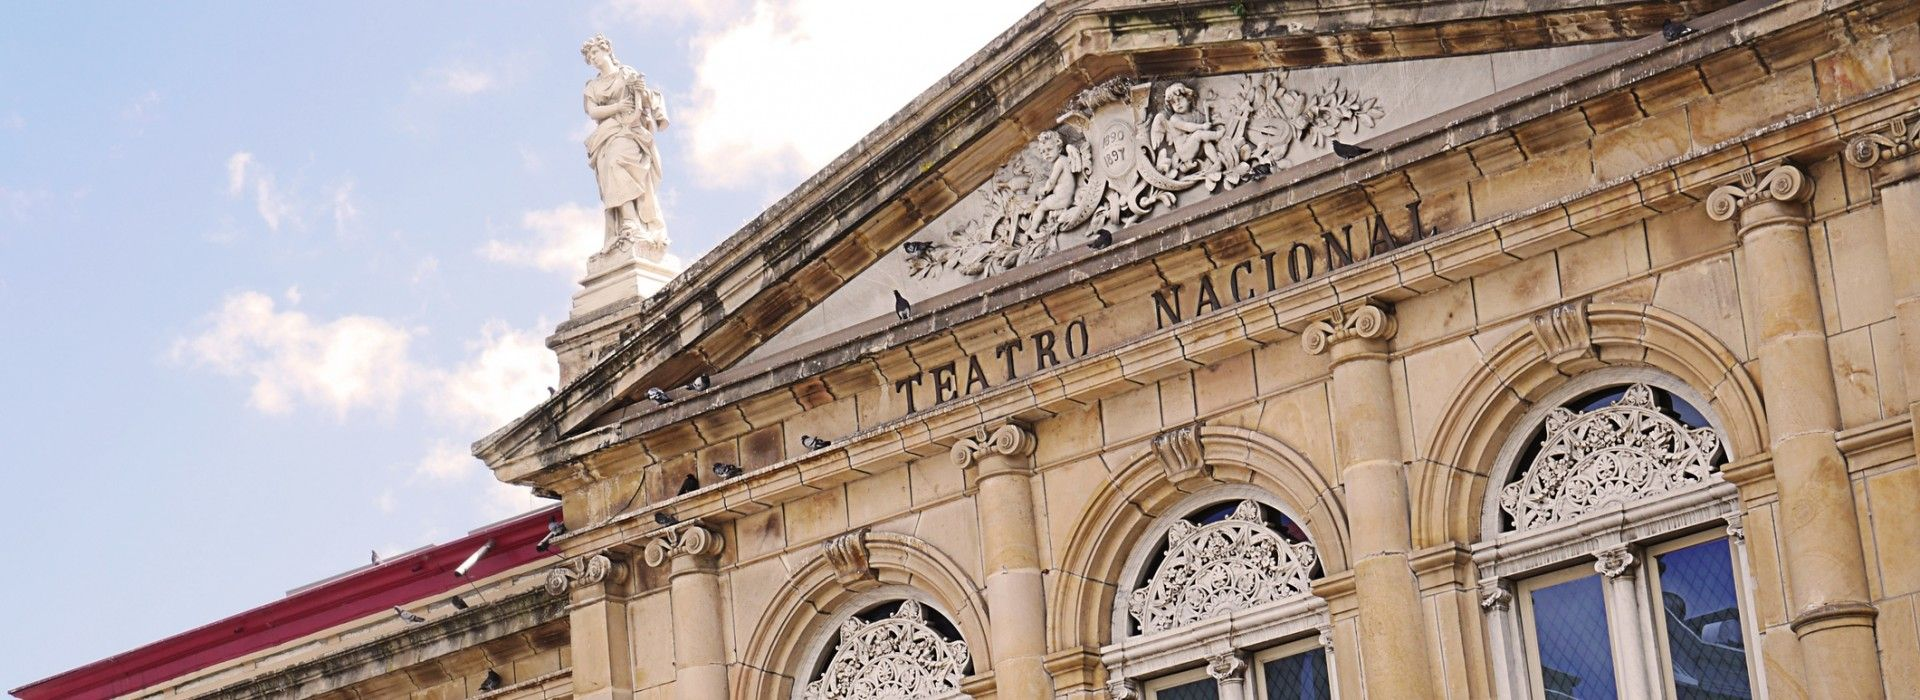 A tour in San Jose is not complete without a visit to the National Theatre.